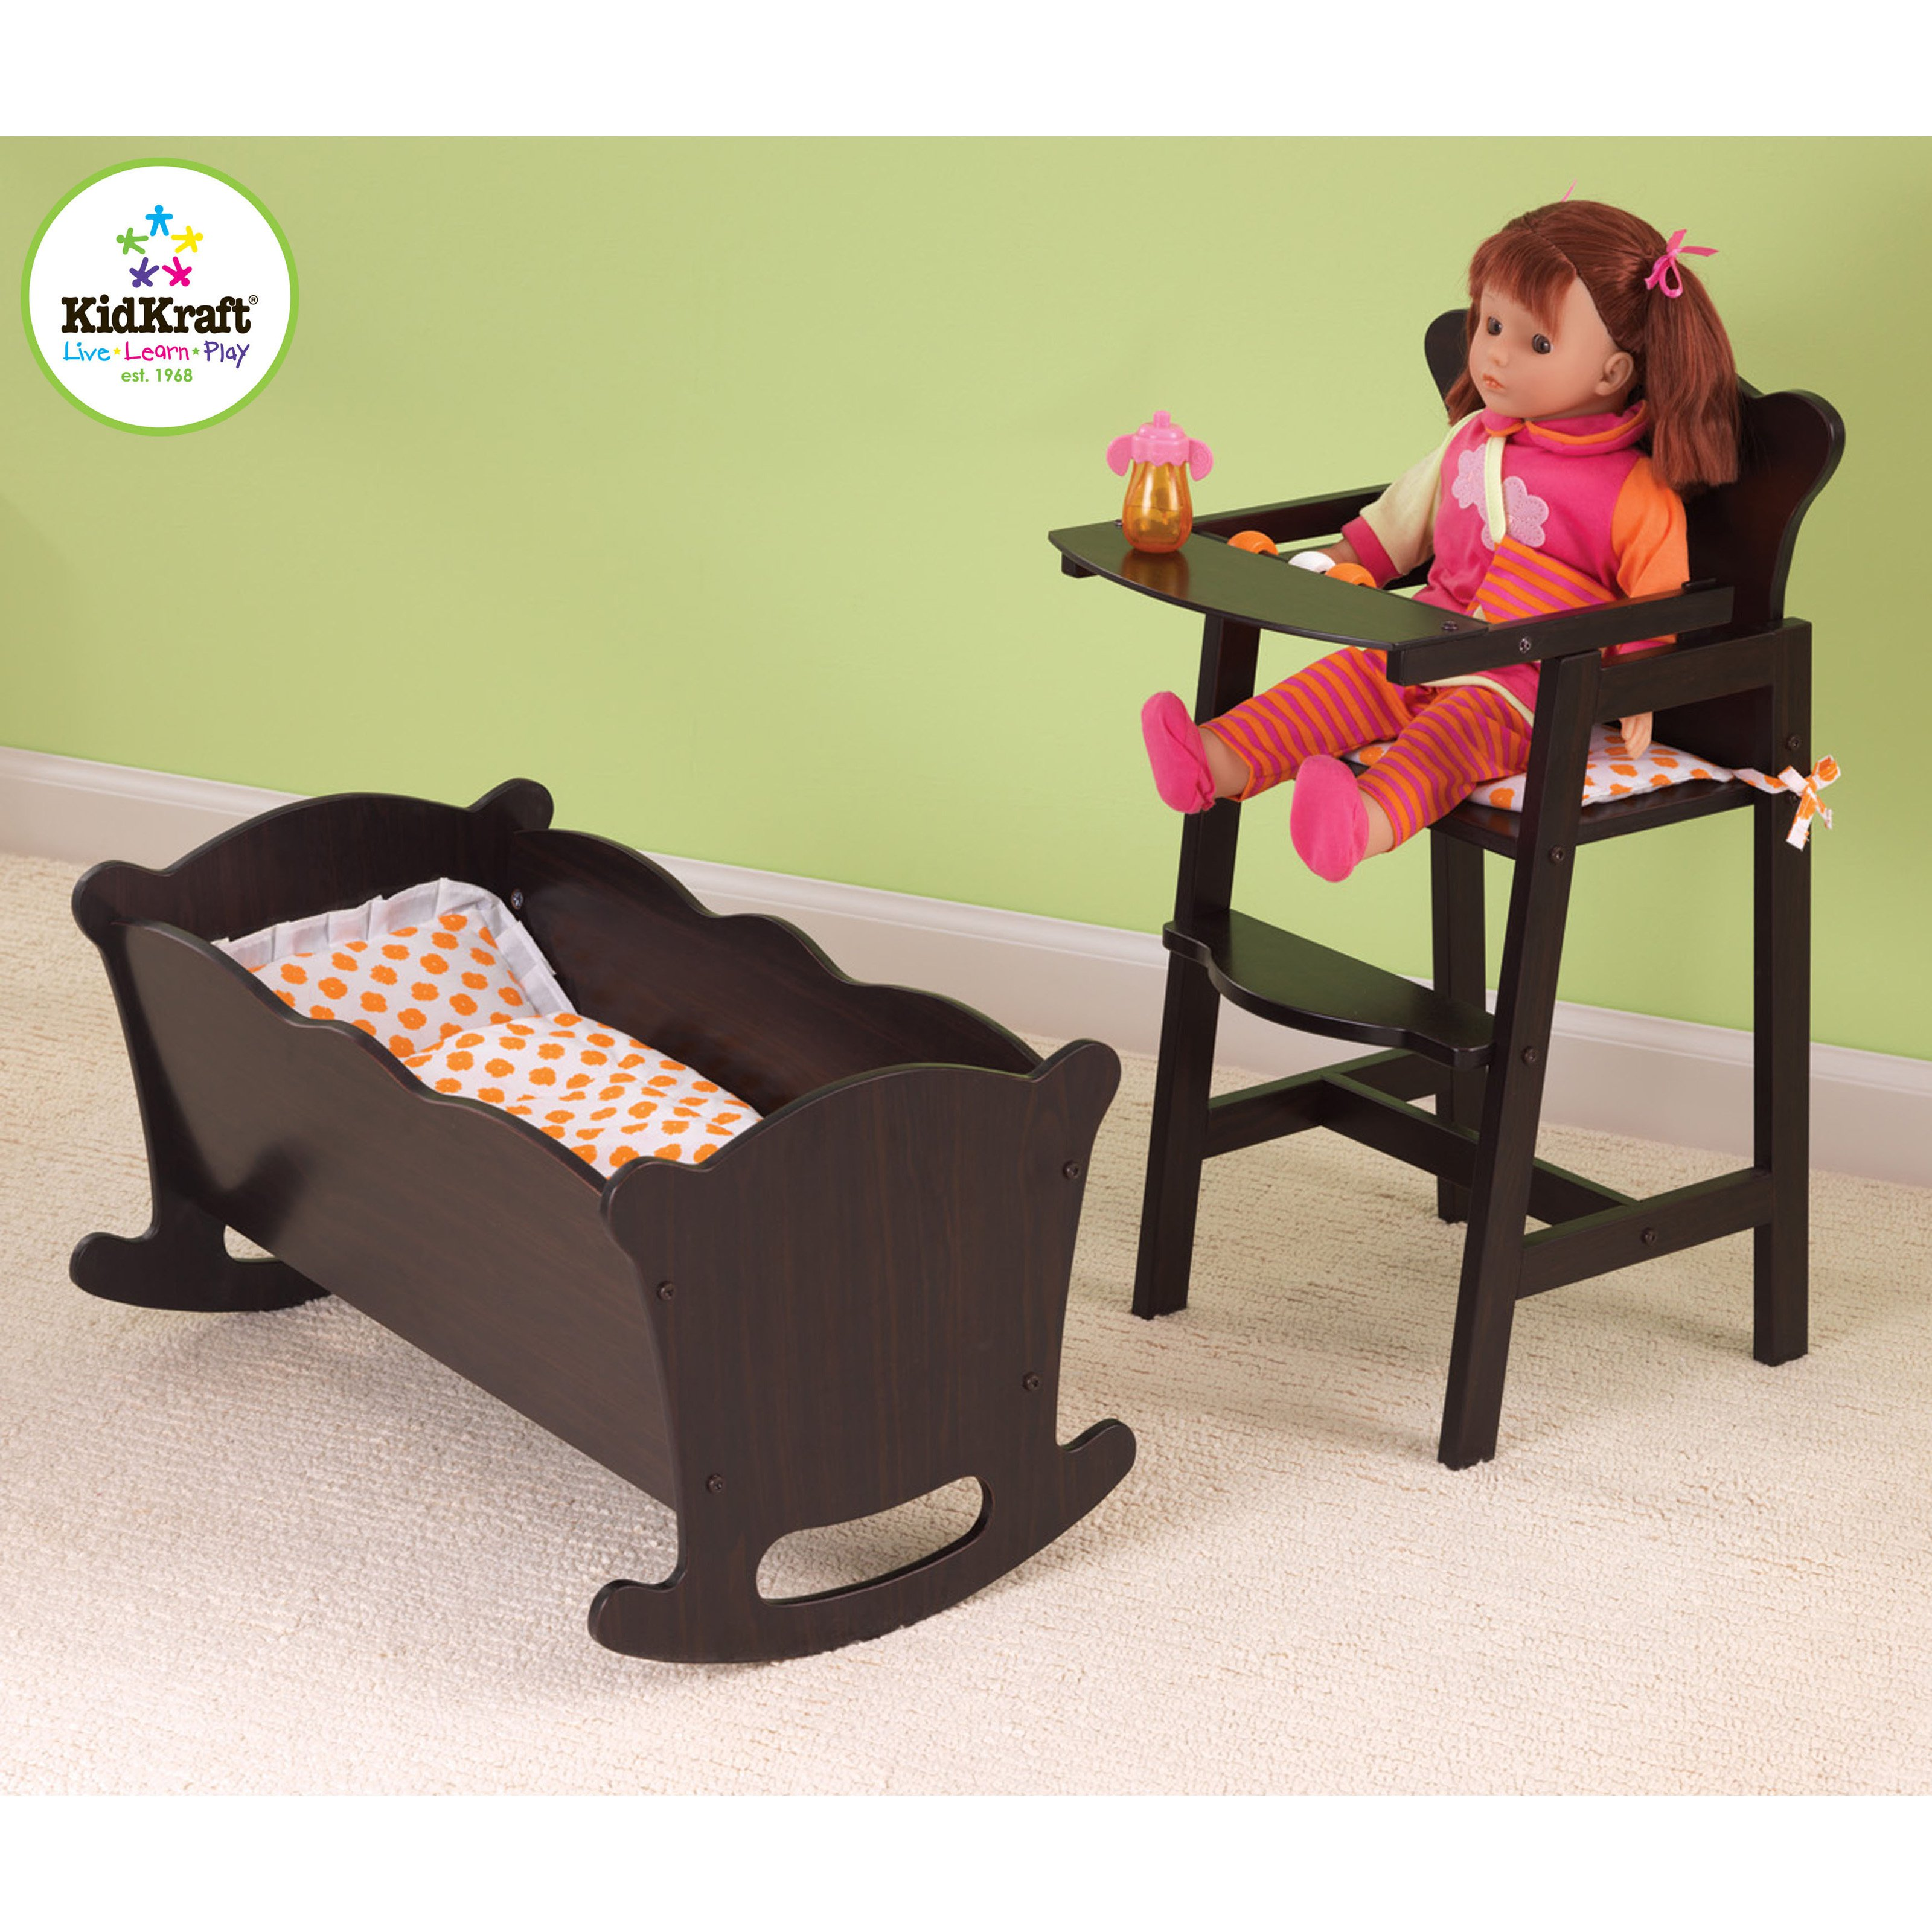 KidKraft Lil Doll High Chair   Espresso   60126